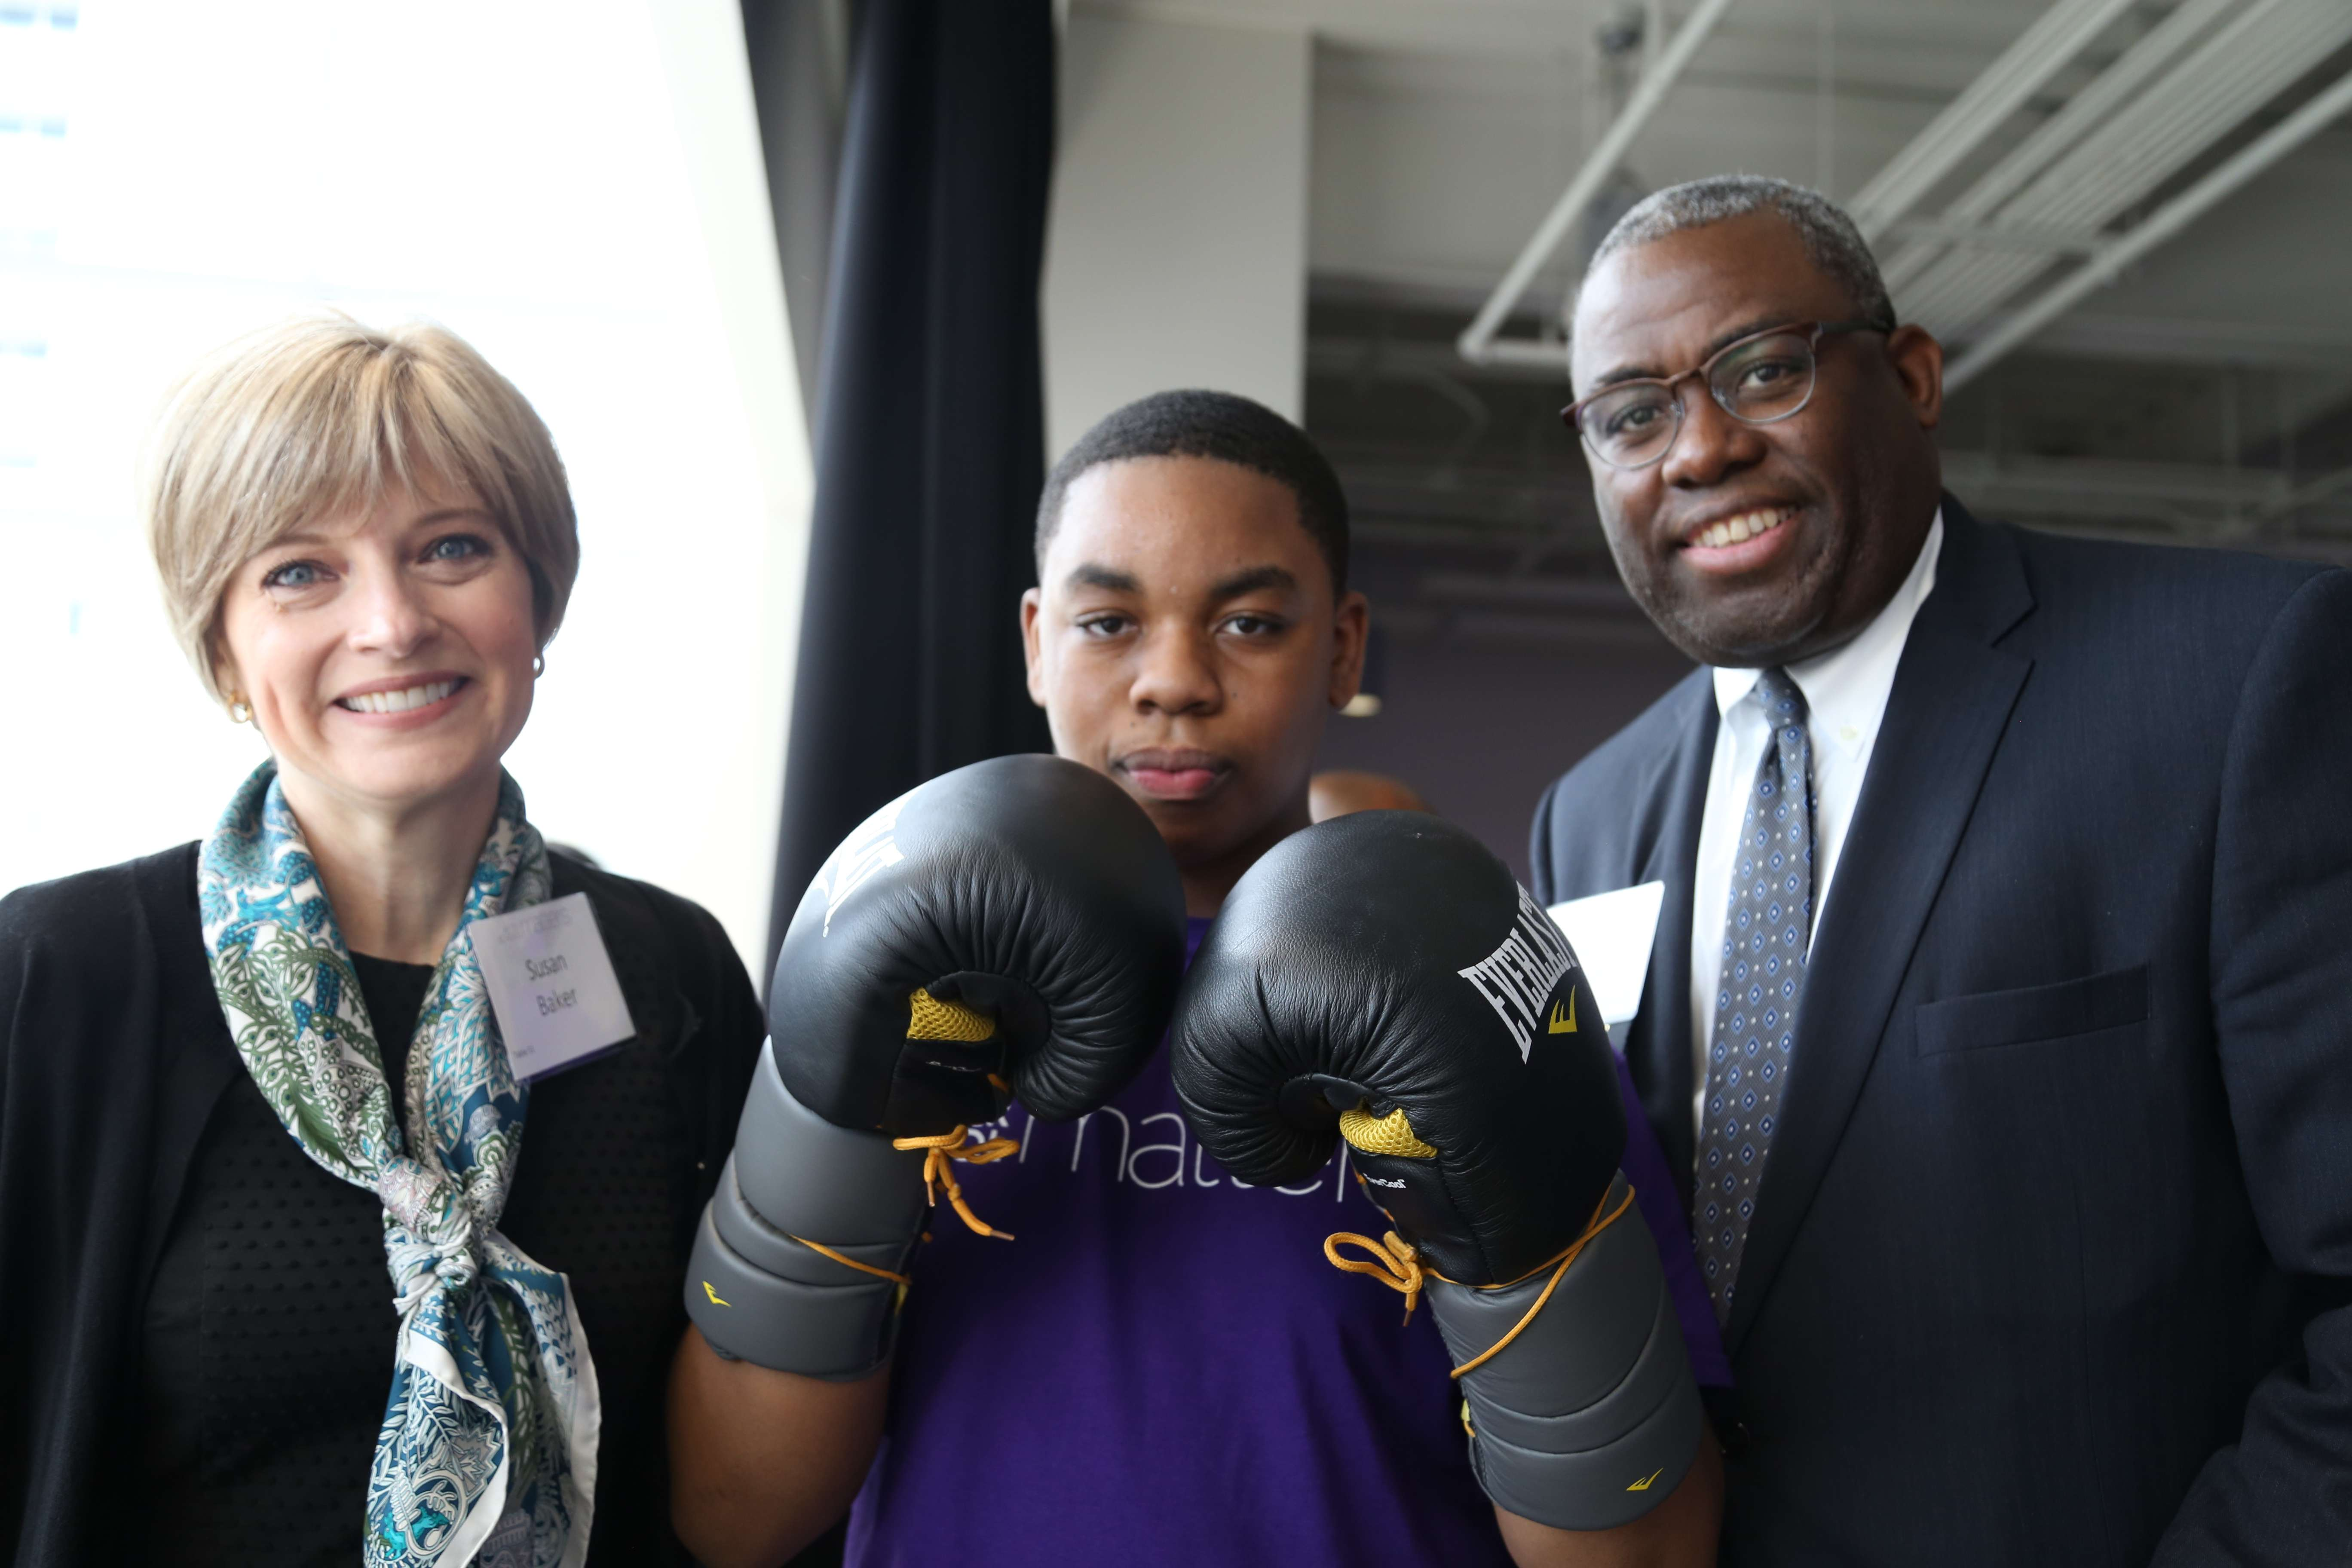 <p>Kashim Skeete, After School Matters Board member, and Susan Baker meet a teen from the Art of Boxing program during the After School Matters Annual Gala on September 18, 2017 at Wintrust Arena. Photo credit: After School Matters </p>